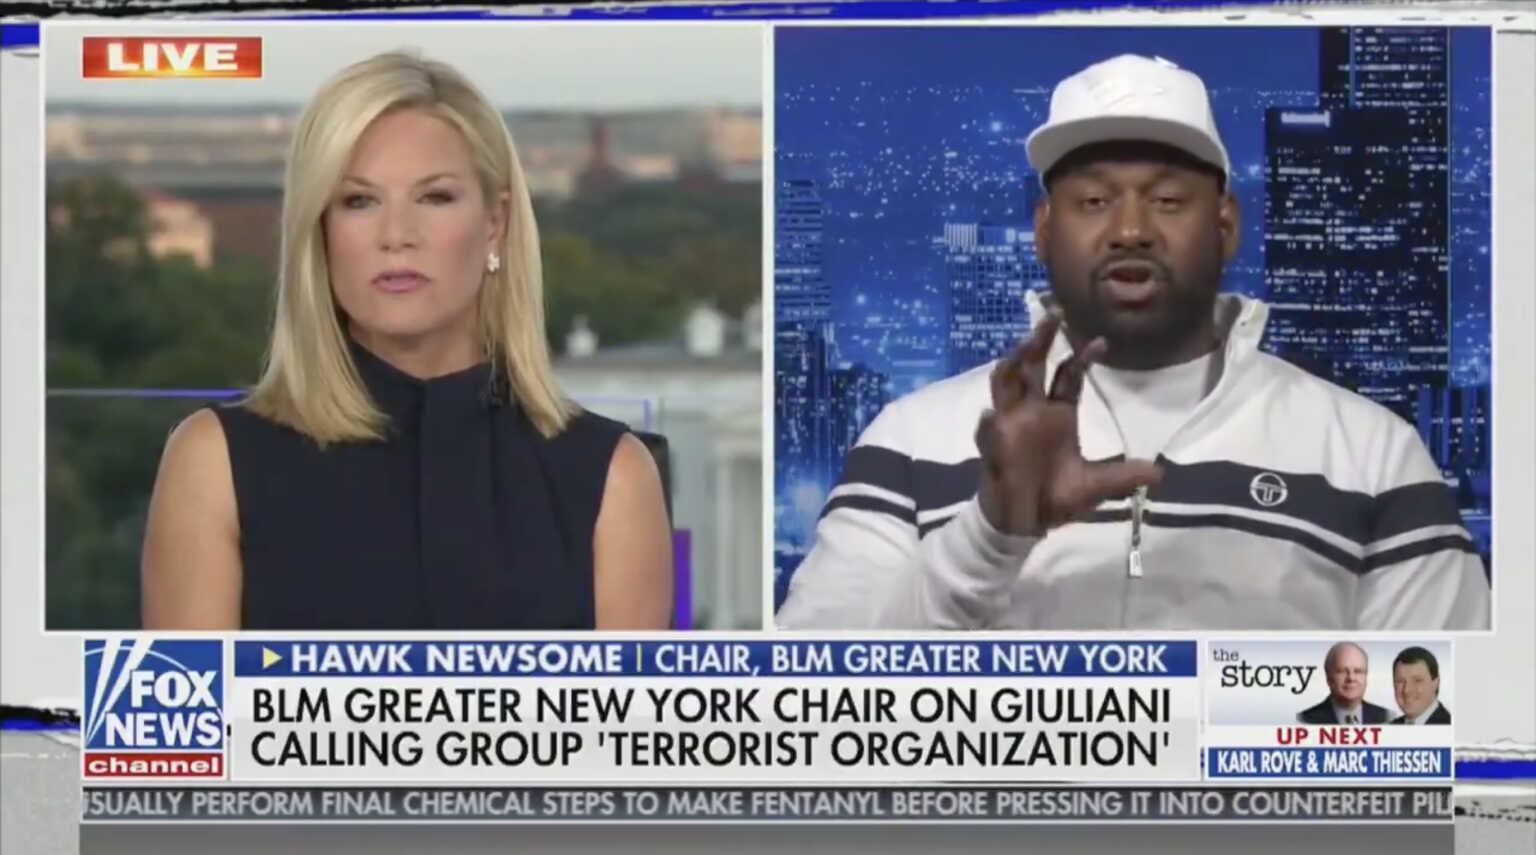 Fox News Martha Maccallum Ends Interview After Blm Leader Refuses To Condemn Looting Cbn News